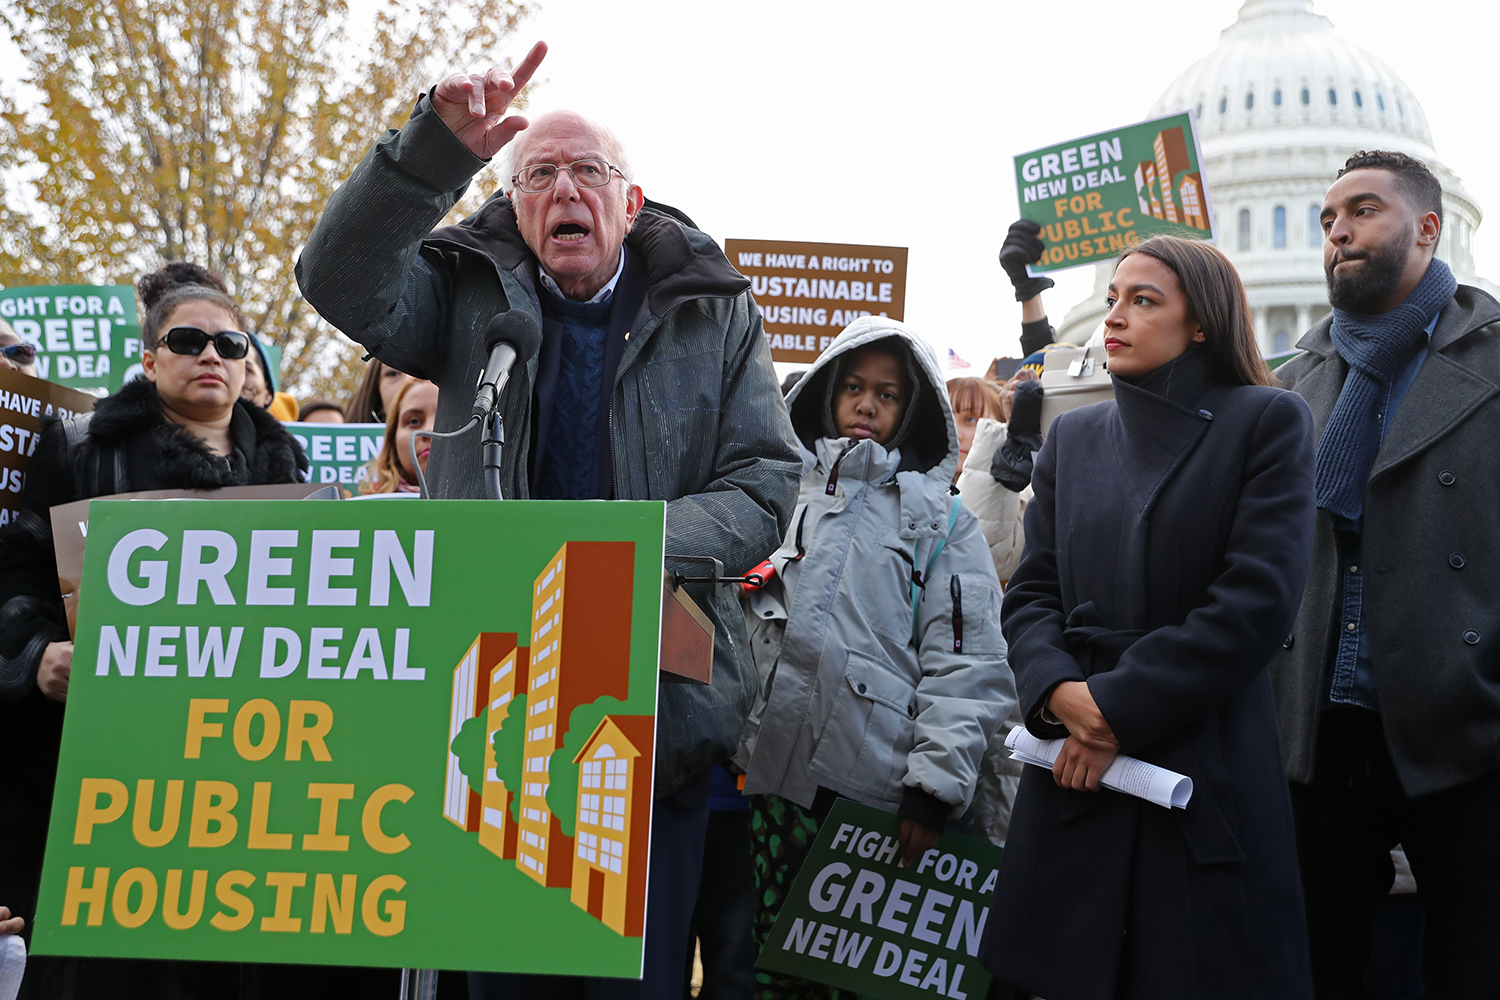 Democratic presidential candidate Sen. Bernie Sanders and U.S. Rep. Alexandria Ocasio-Cortez hold a news conference to introduce legislation to transform public housing as part of their Green New Deal proposal outside the U.S. Capitol on Nov. 14.